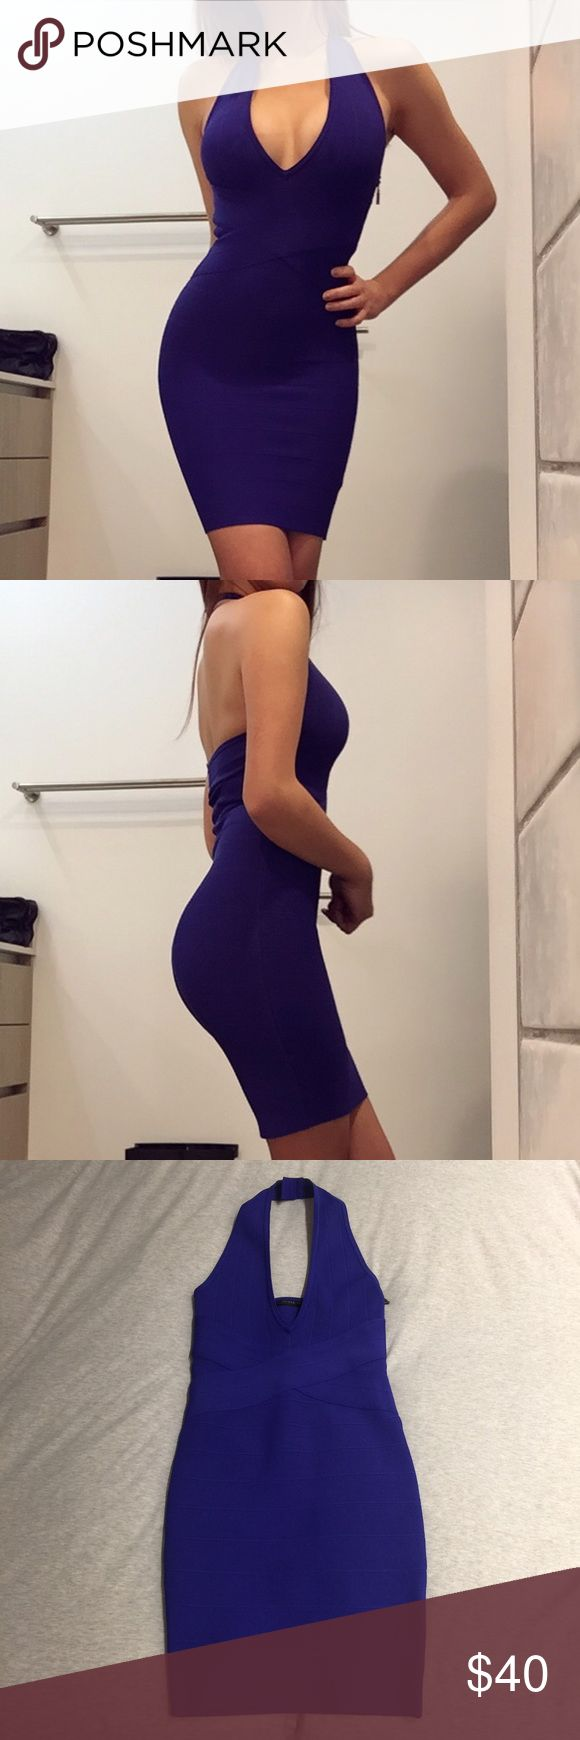 Guess purple bandage bodycon dress super tight and snug to tuck and smooth everything in but super stretchy and stays in place! still in like new condition, only worn once Guess Dresses Midi